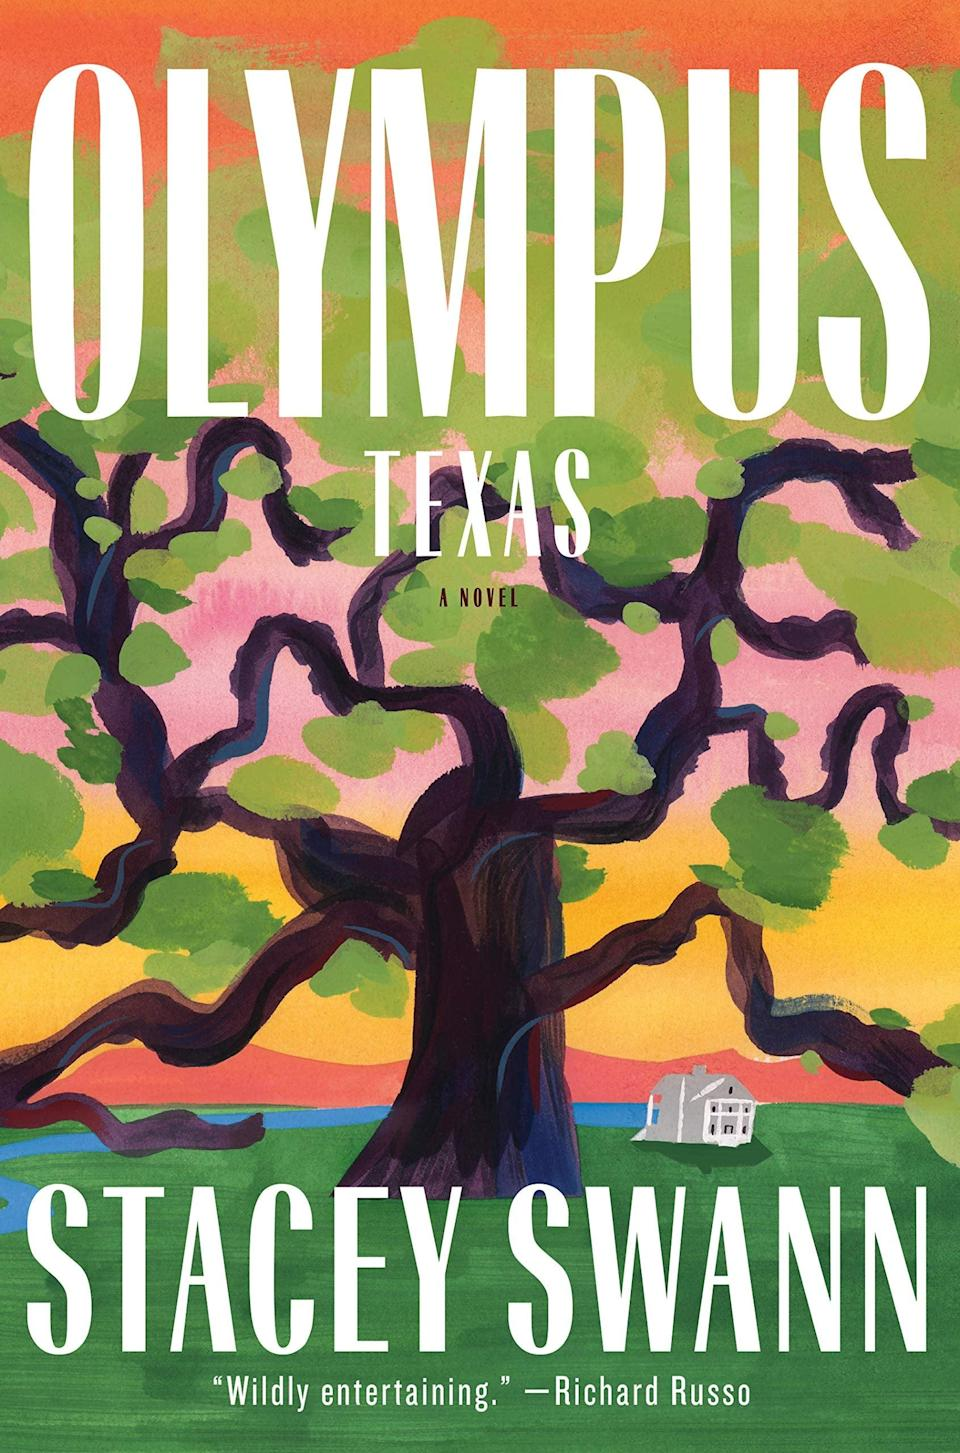 <p>At once a story rooted in classical mythology and a good old-fashioned family drama, <span><strong>Olympus, Texas</strong></span> by Stacey Swann is an epic story about a prodigal son's return - and the havoc he wreaks on his family. Two years after it was discovered he was having an affair with his brother's wife, March returns home, and it's a mere matter of days before the Briscoe family's lives are completely upended by marital woes and at least one dead body. </p> <p><em>Out May 4</em></p>